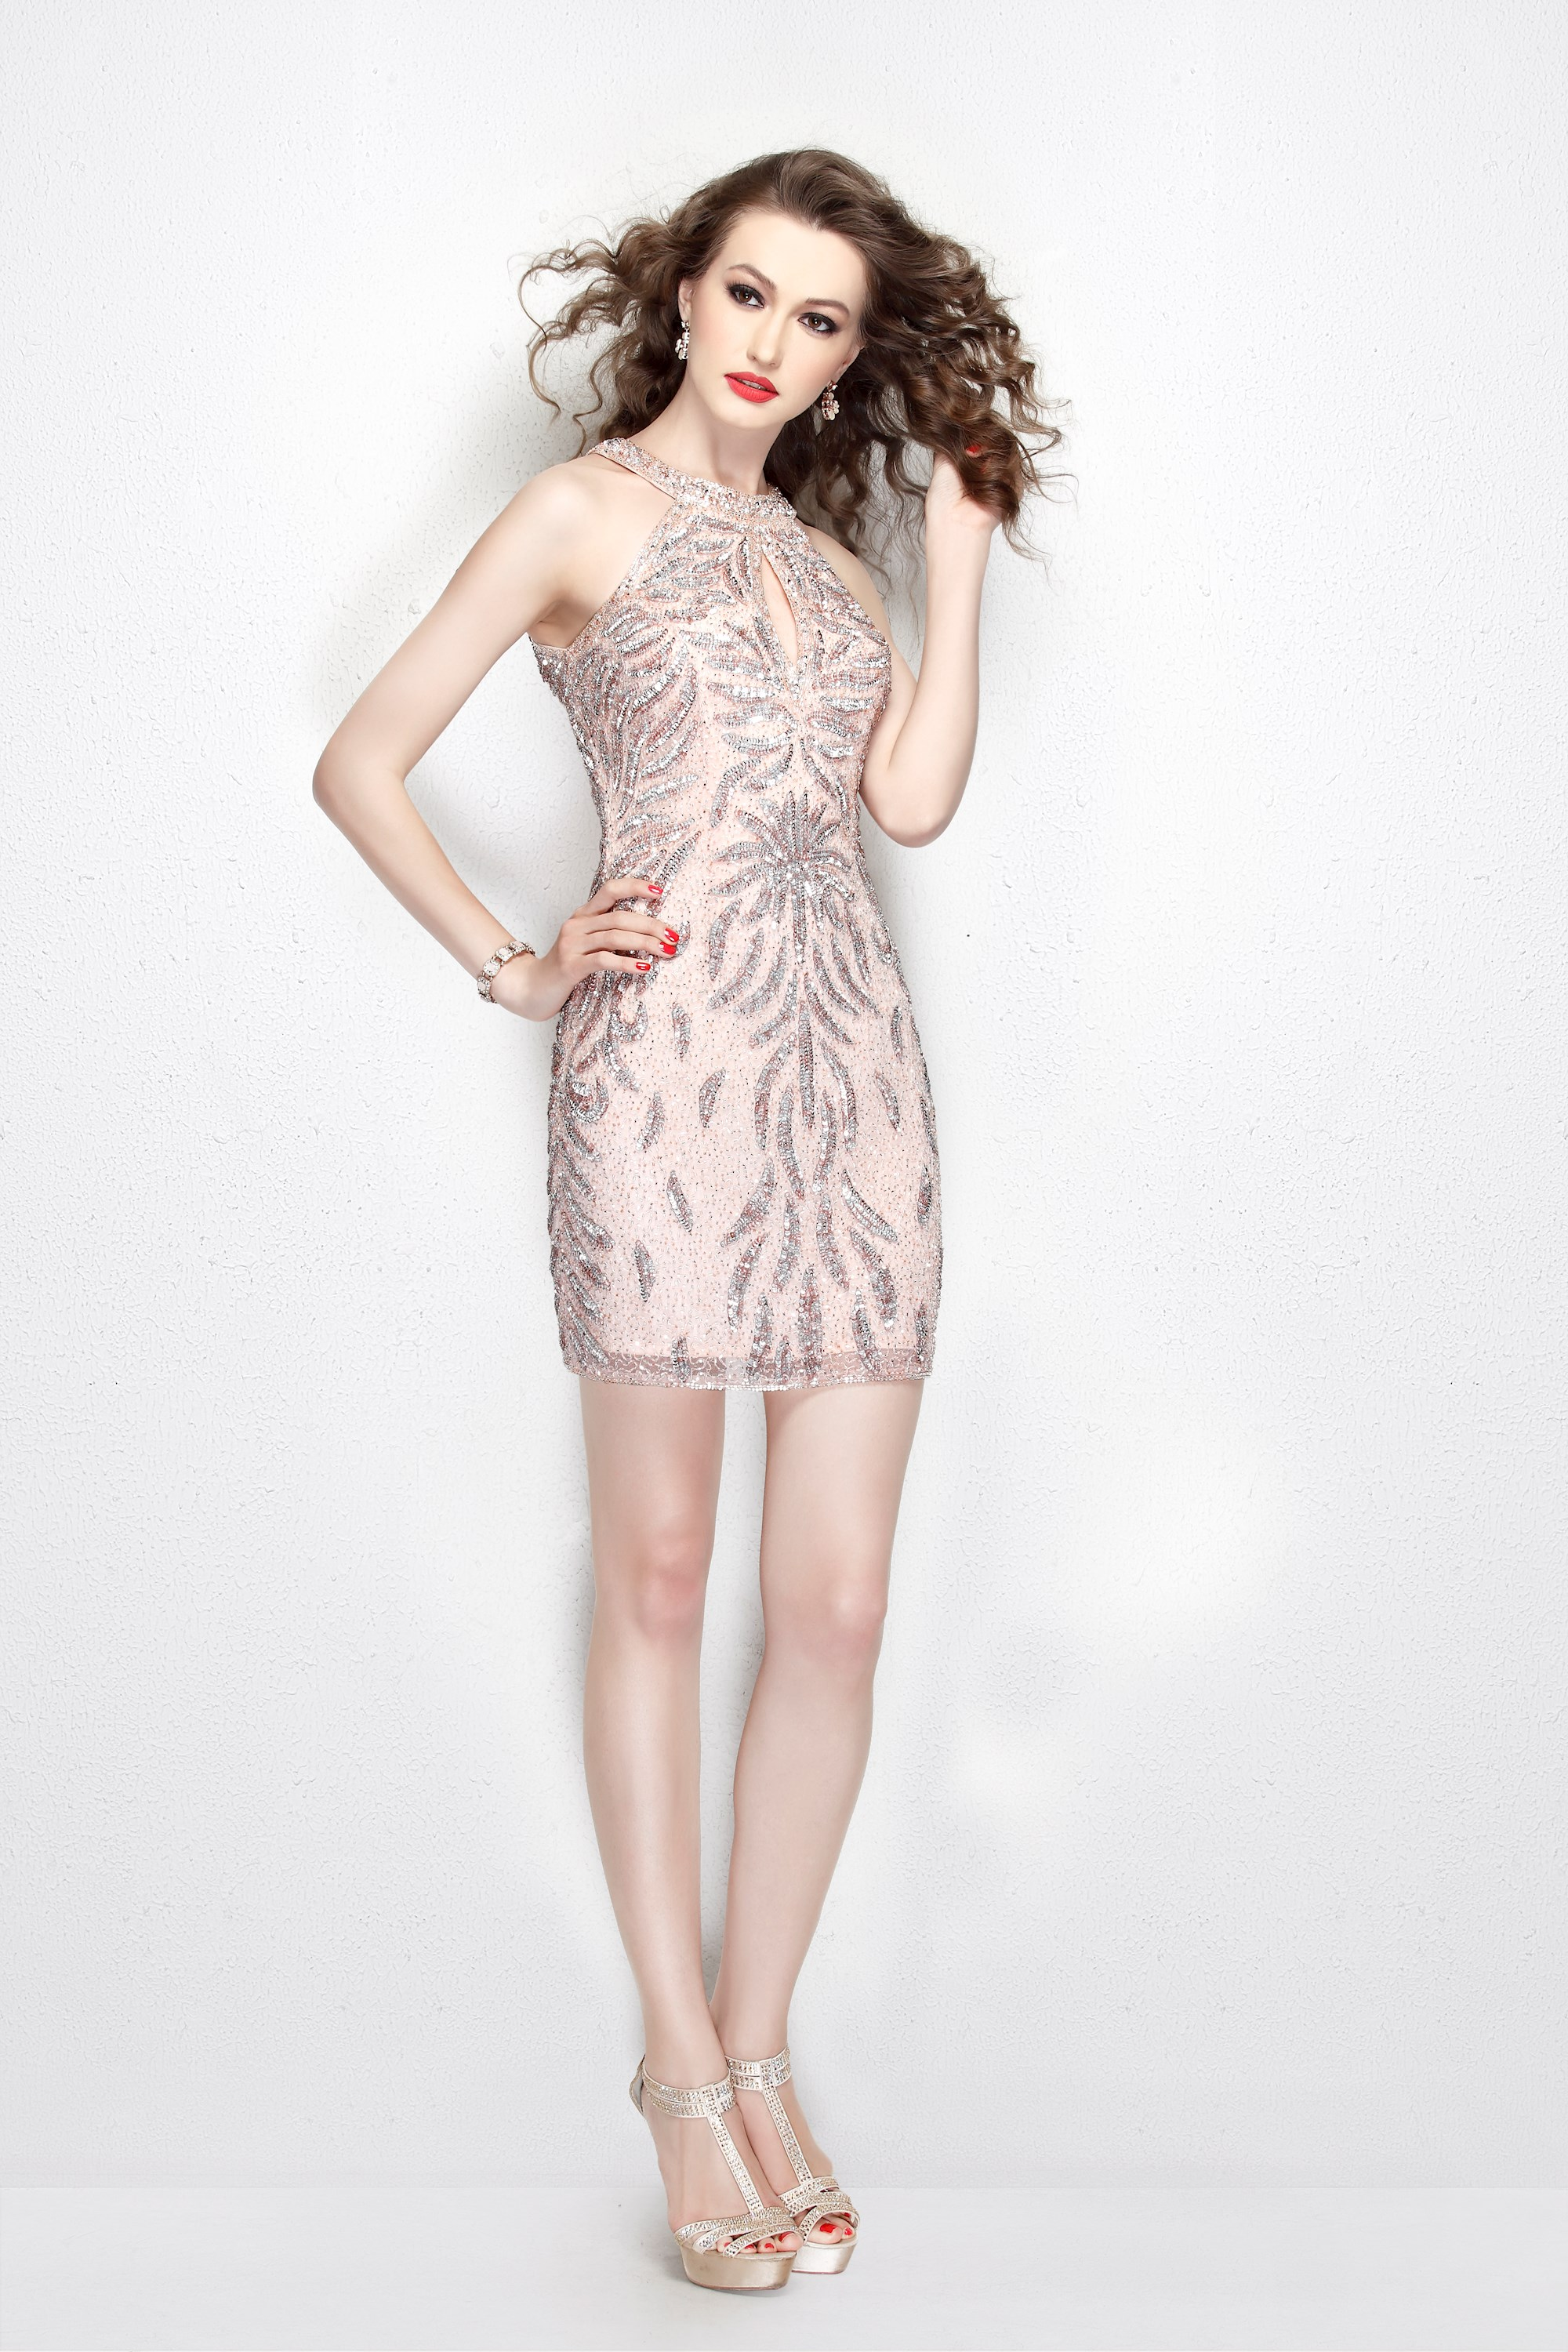 f39ce812d7f ... Short Dresses · Evening · bridesmaids · Contact · Home   Primavera  Couture   Homecoming 2017  . image 0. Click to zoom